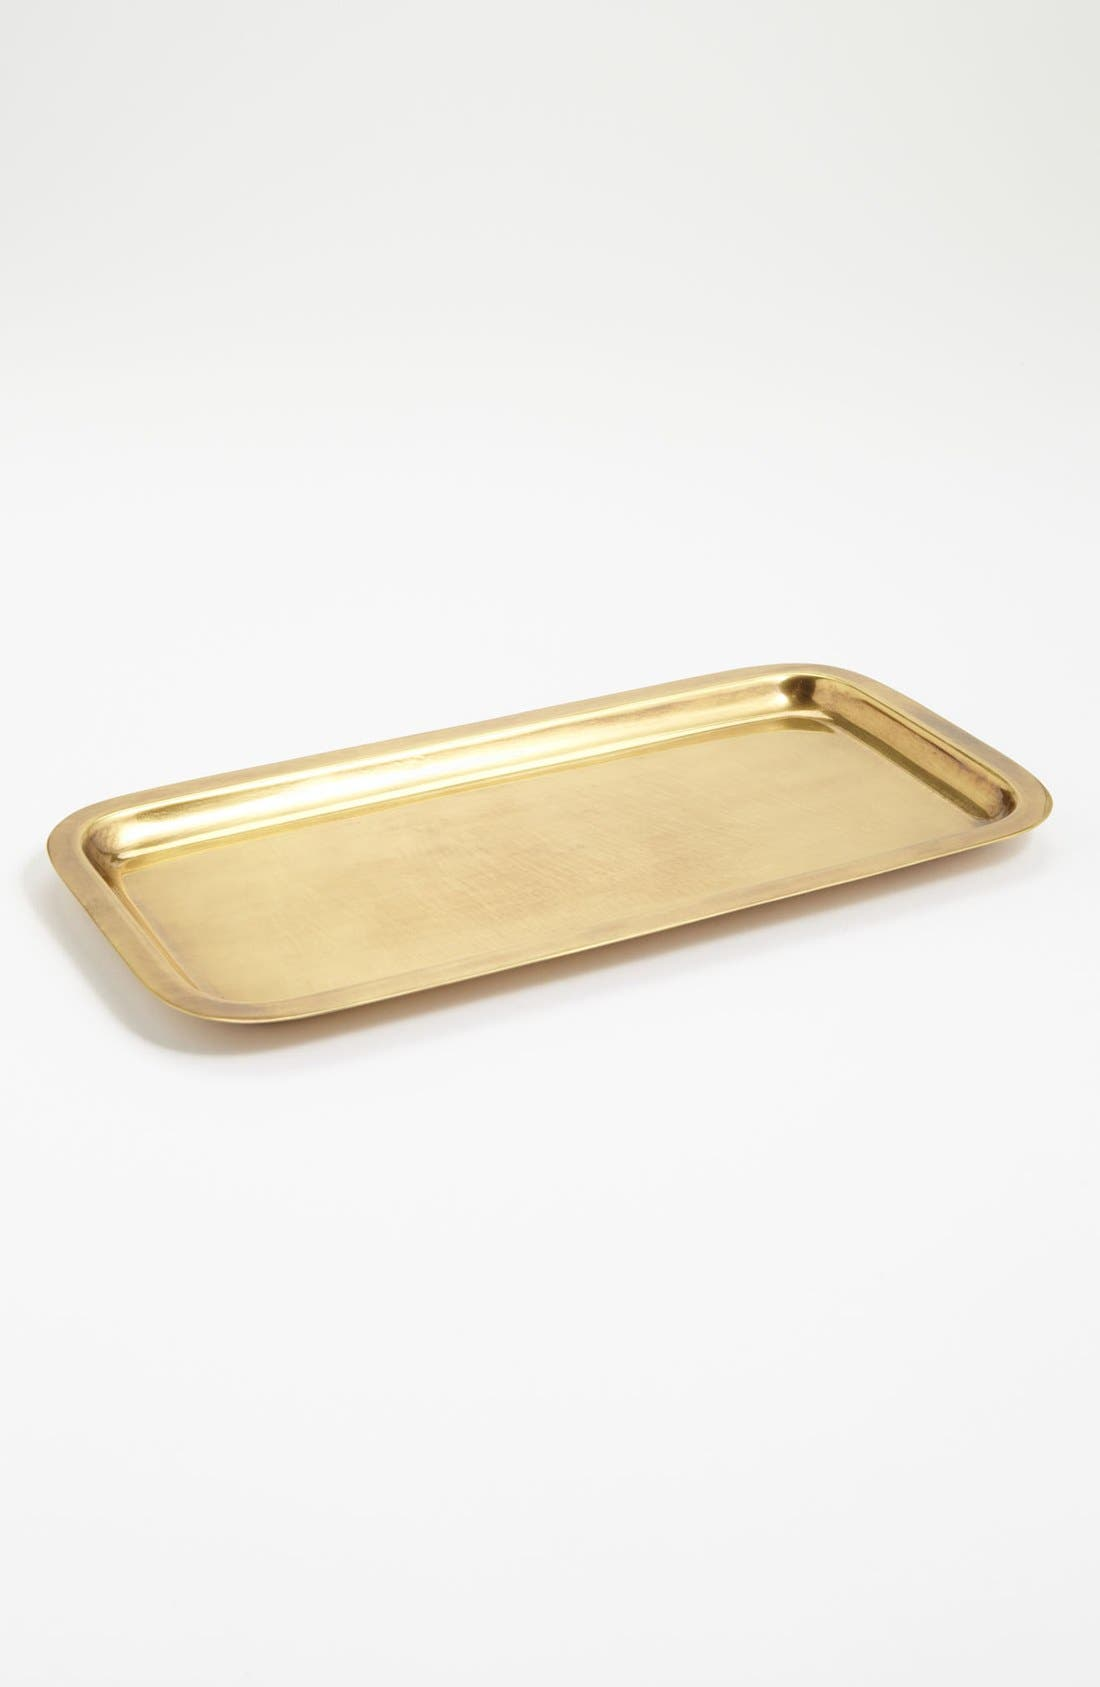 Waterworks Studio 'Wallingford' Tray (Online Only)